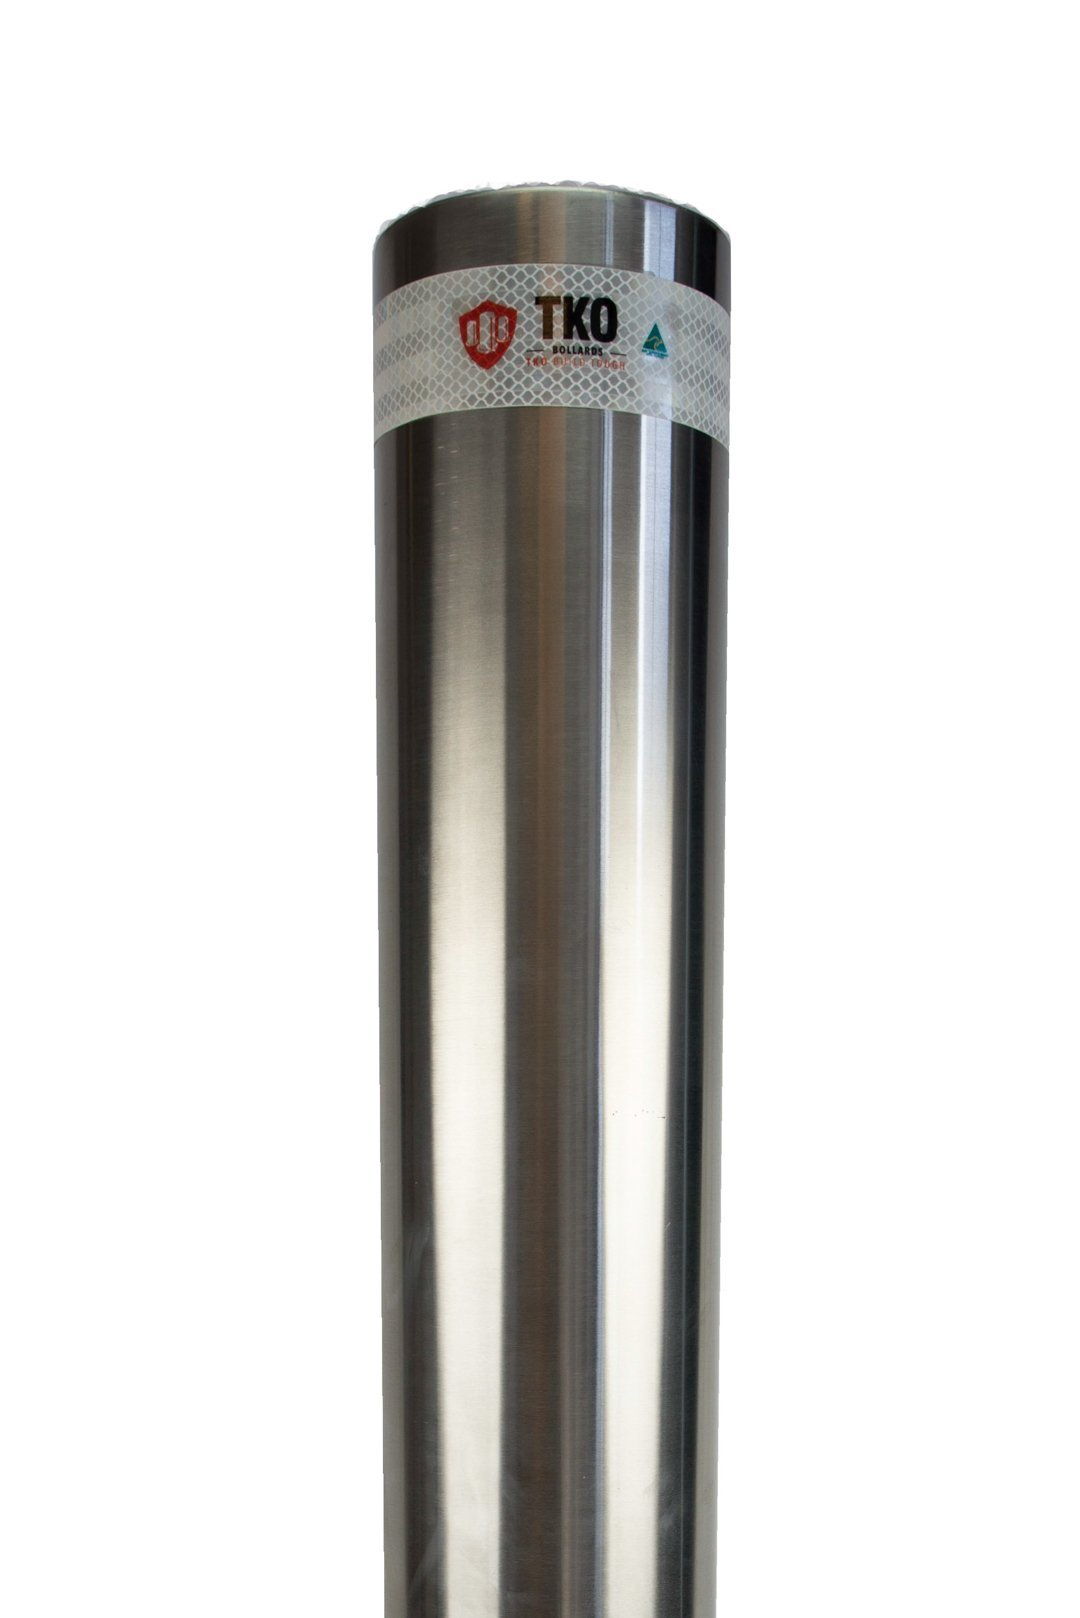 140 OD/MM In-Ground Stainless Steel Bollard - Brisbane bollards